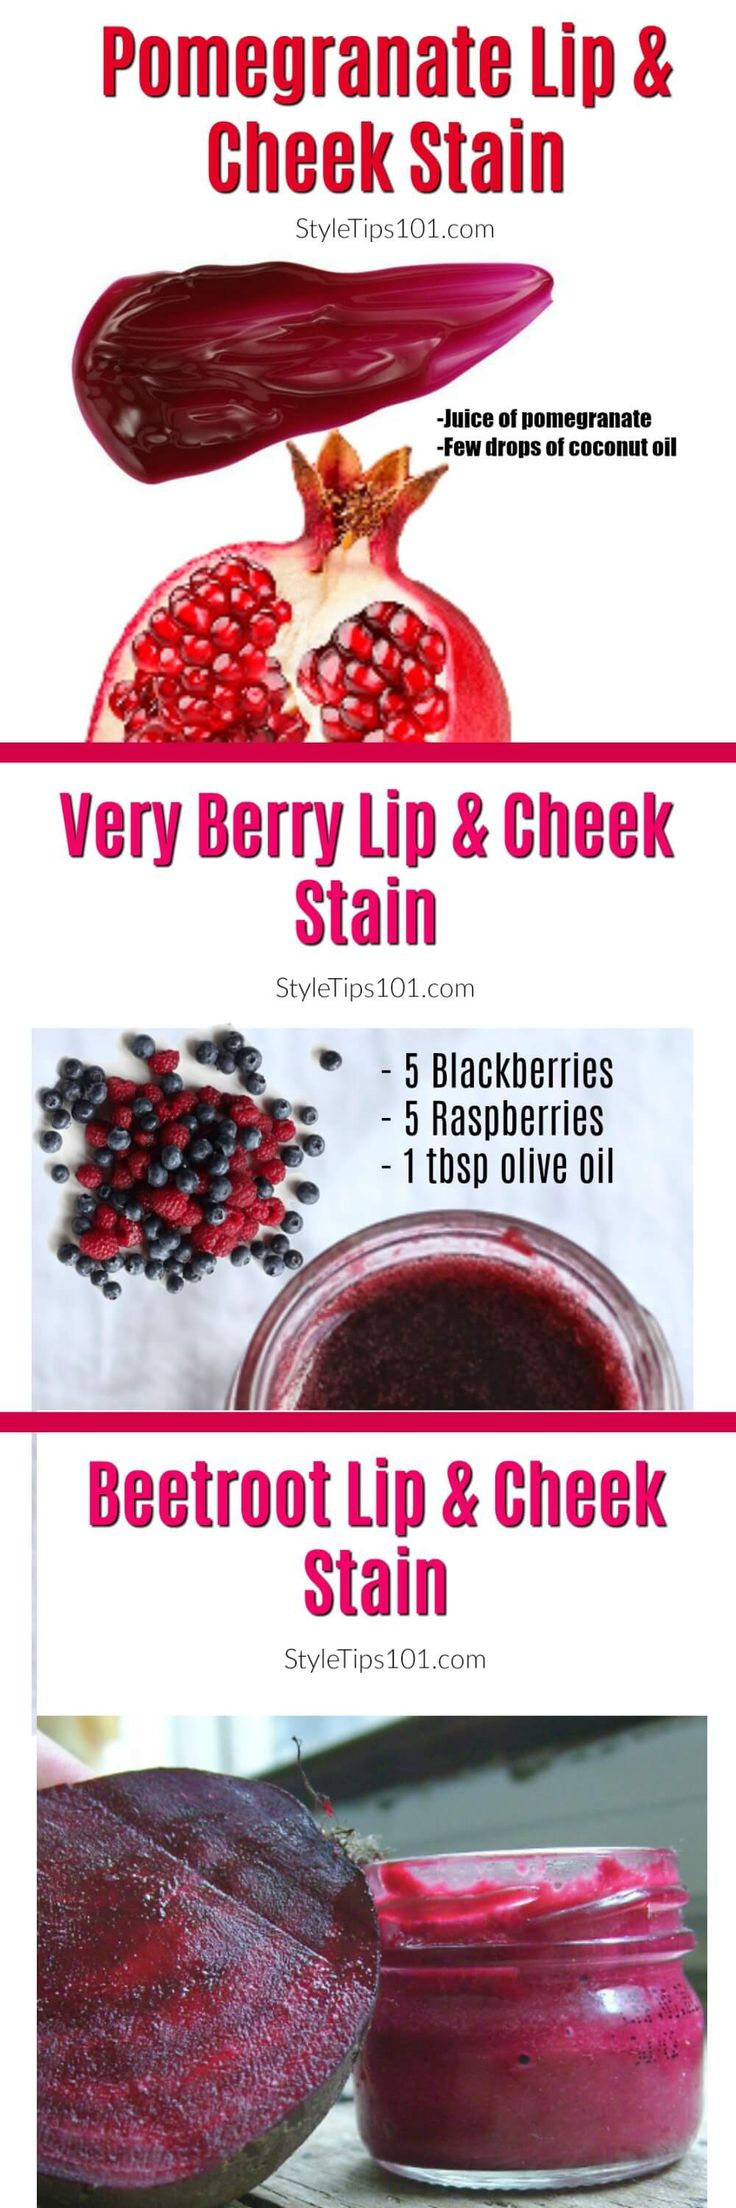 3 all natural lip & cheek stains that will stay put ALL day long!